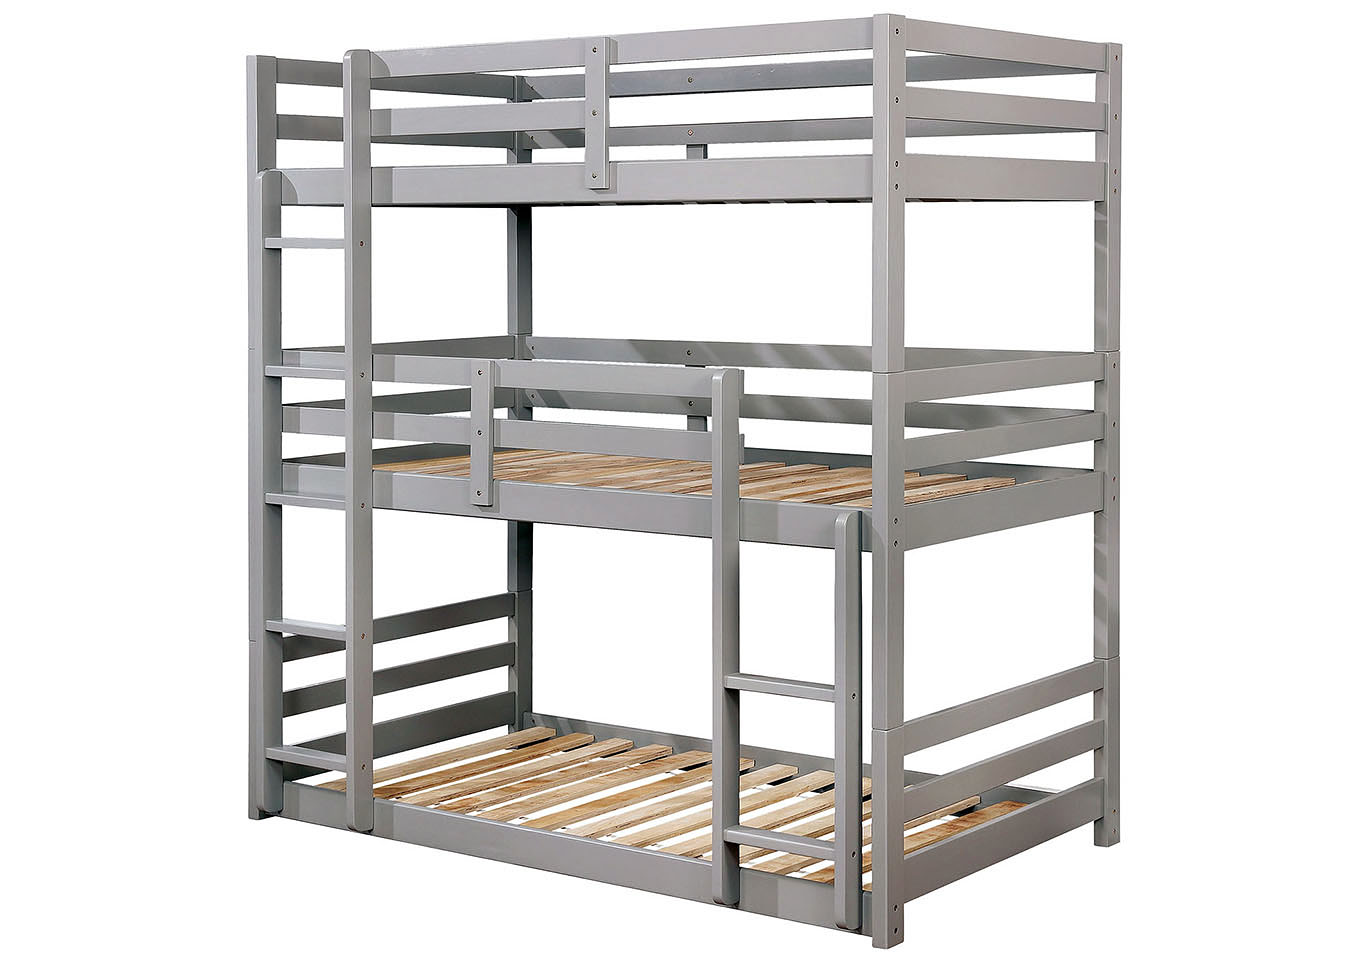 California V Gray Twin/Twin/Twin 3-Tiered Bunk Bed,Furniture of America